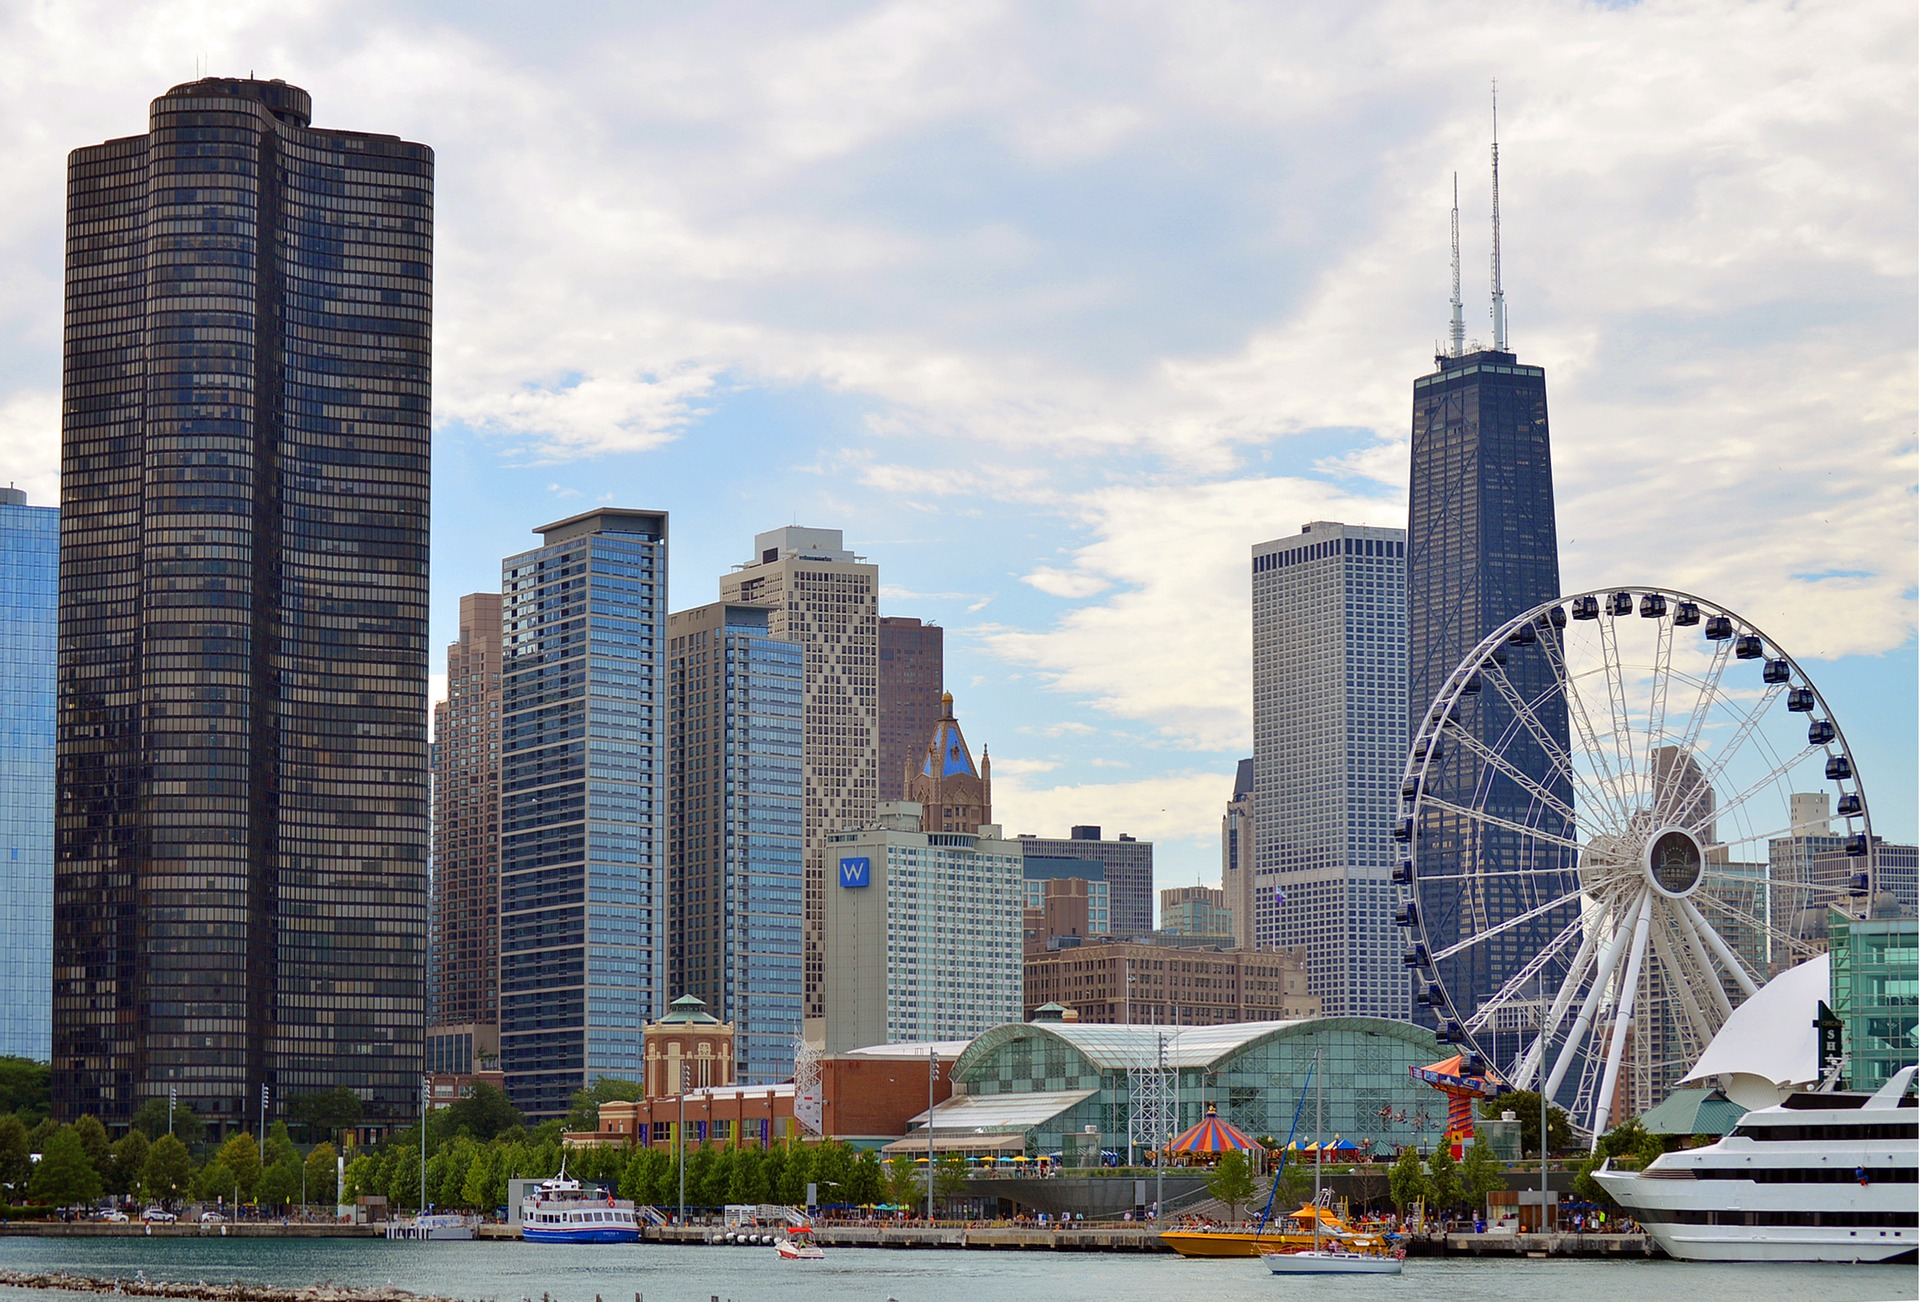 Chicago - Visit all 50 states - Best things to do in each state